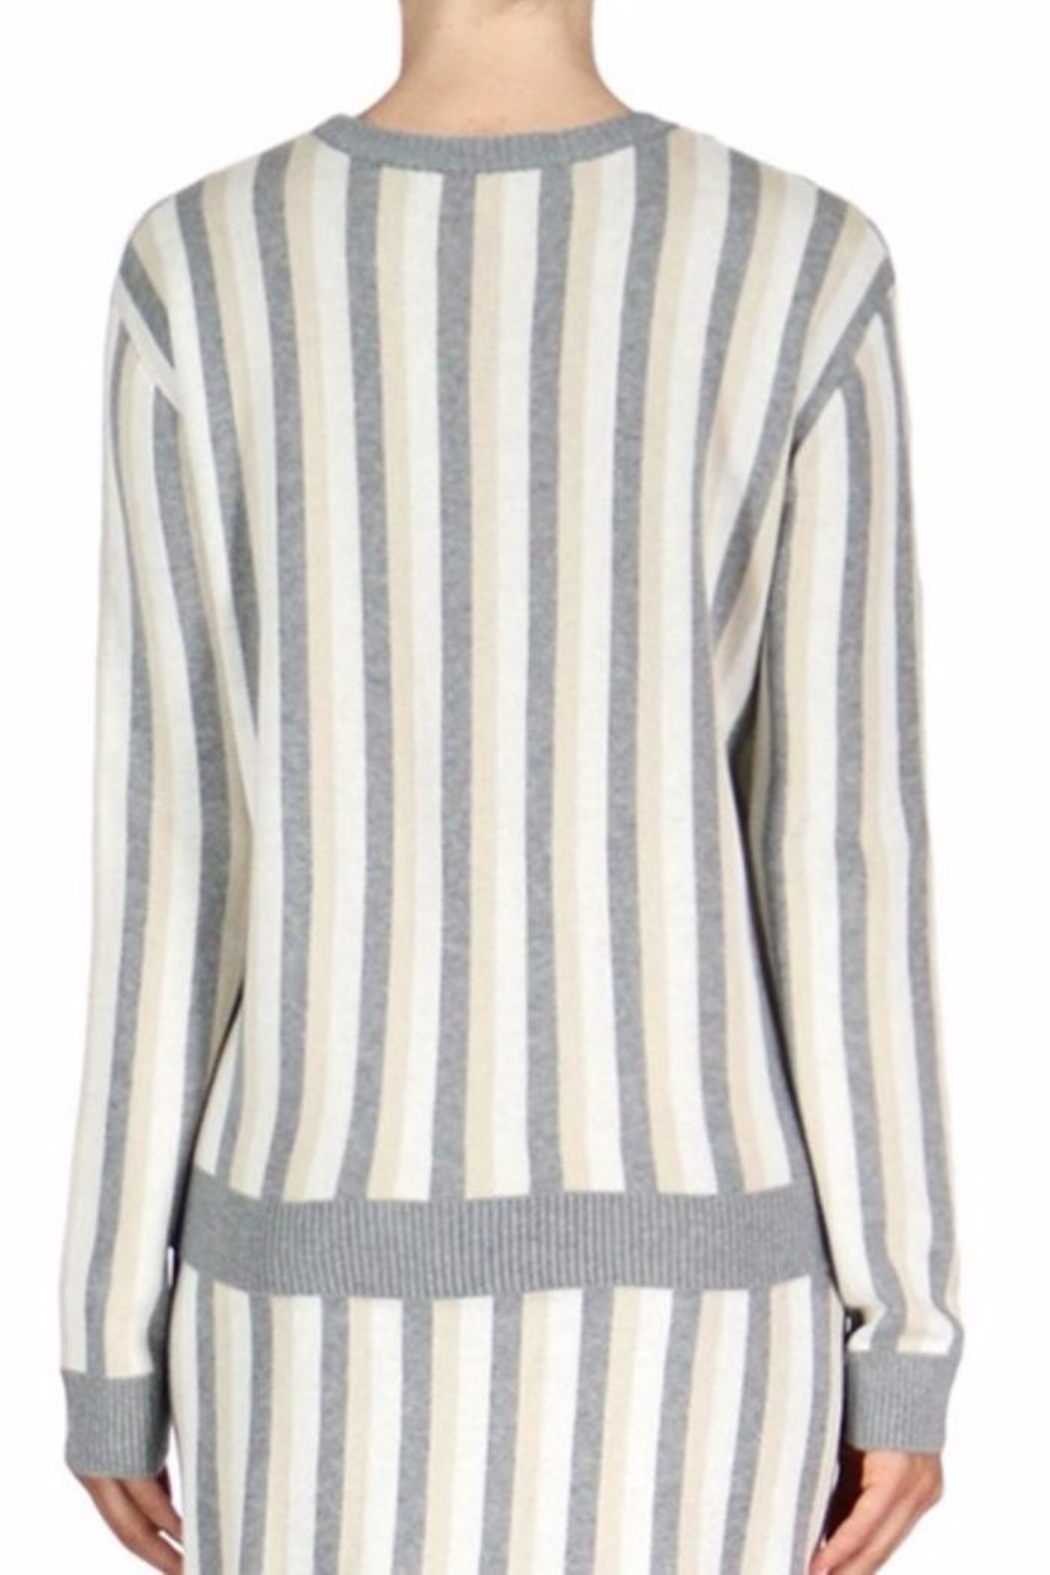 English Factory Stripe Sweater - Front Full Image